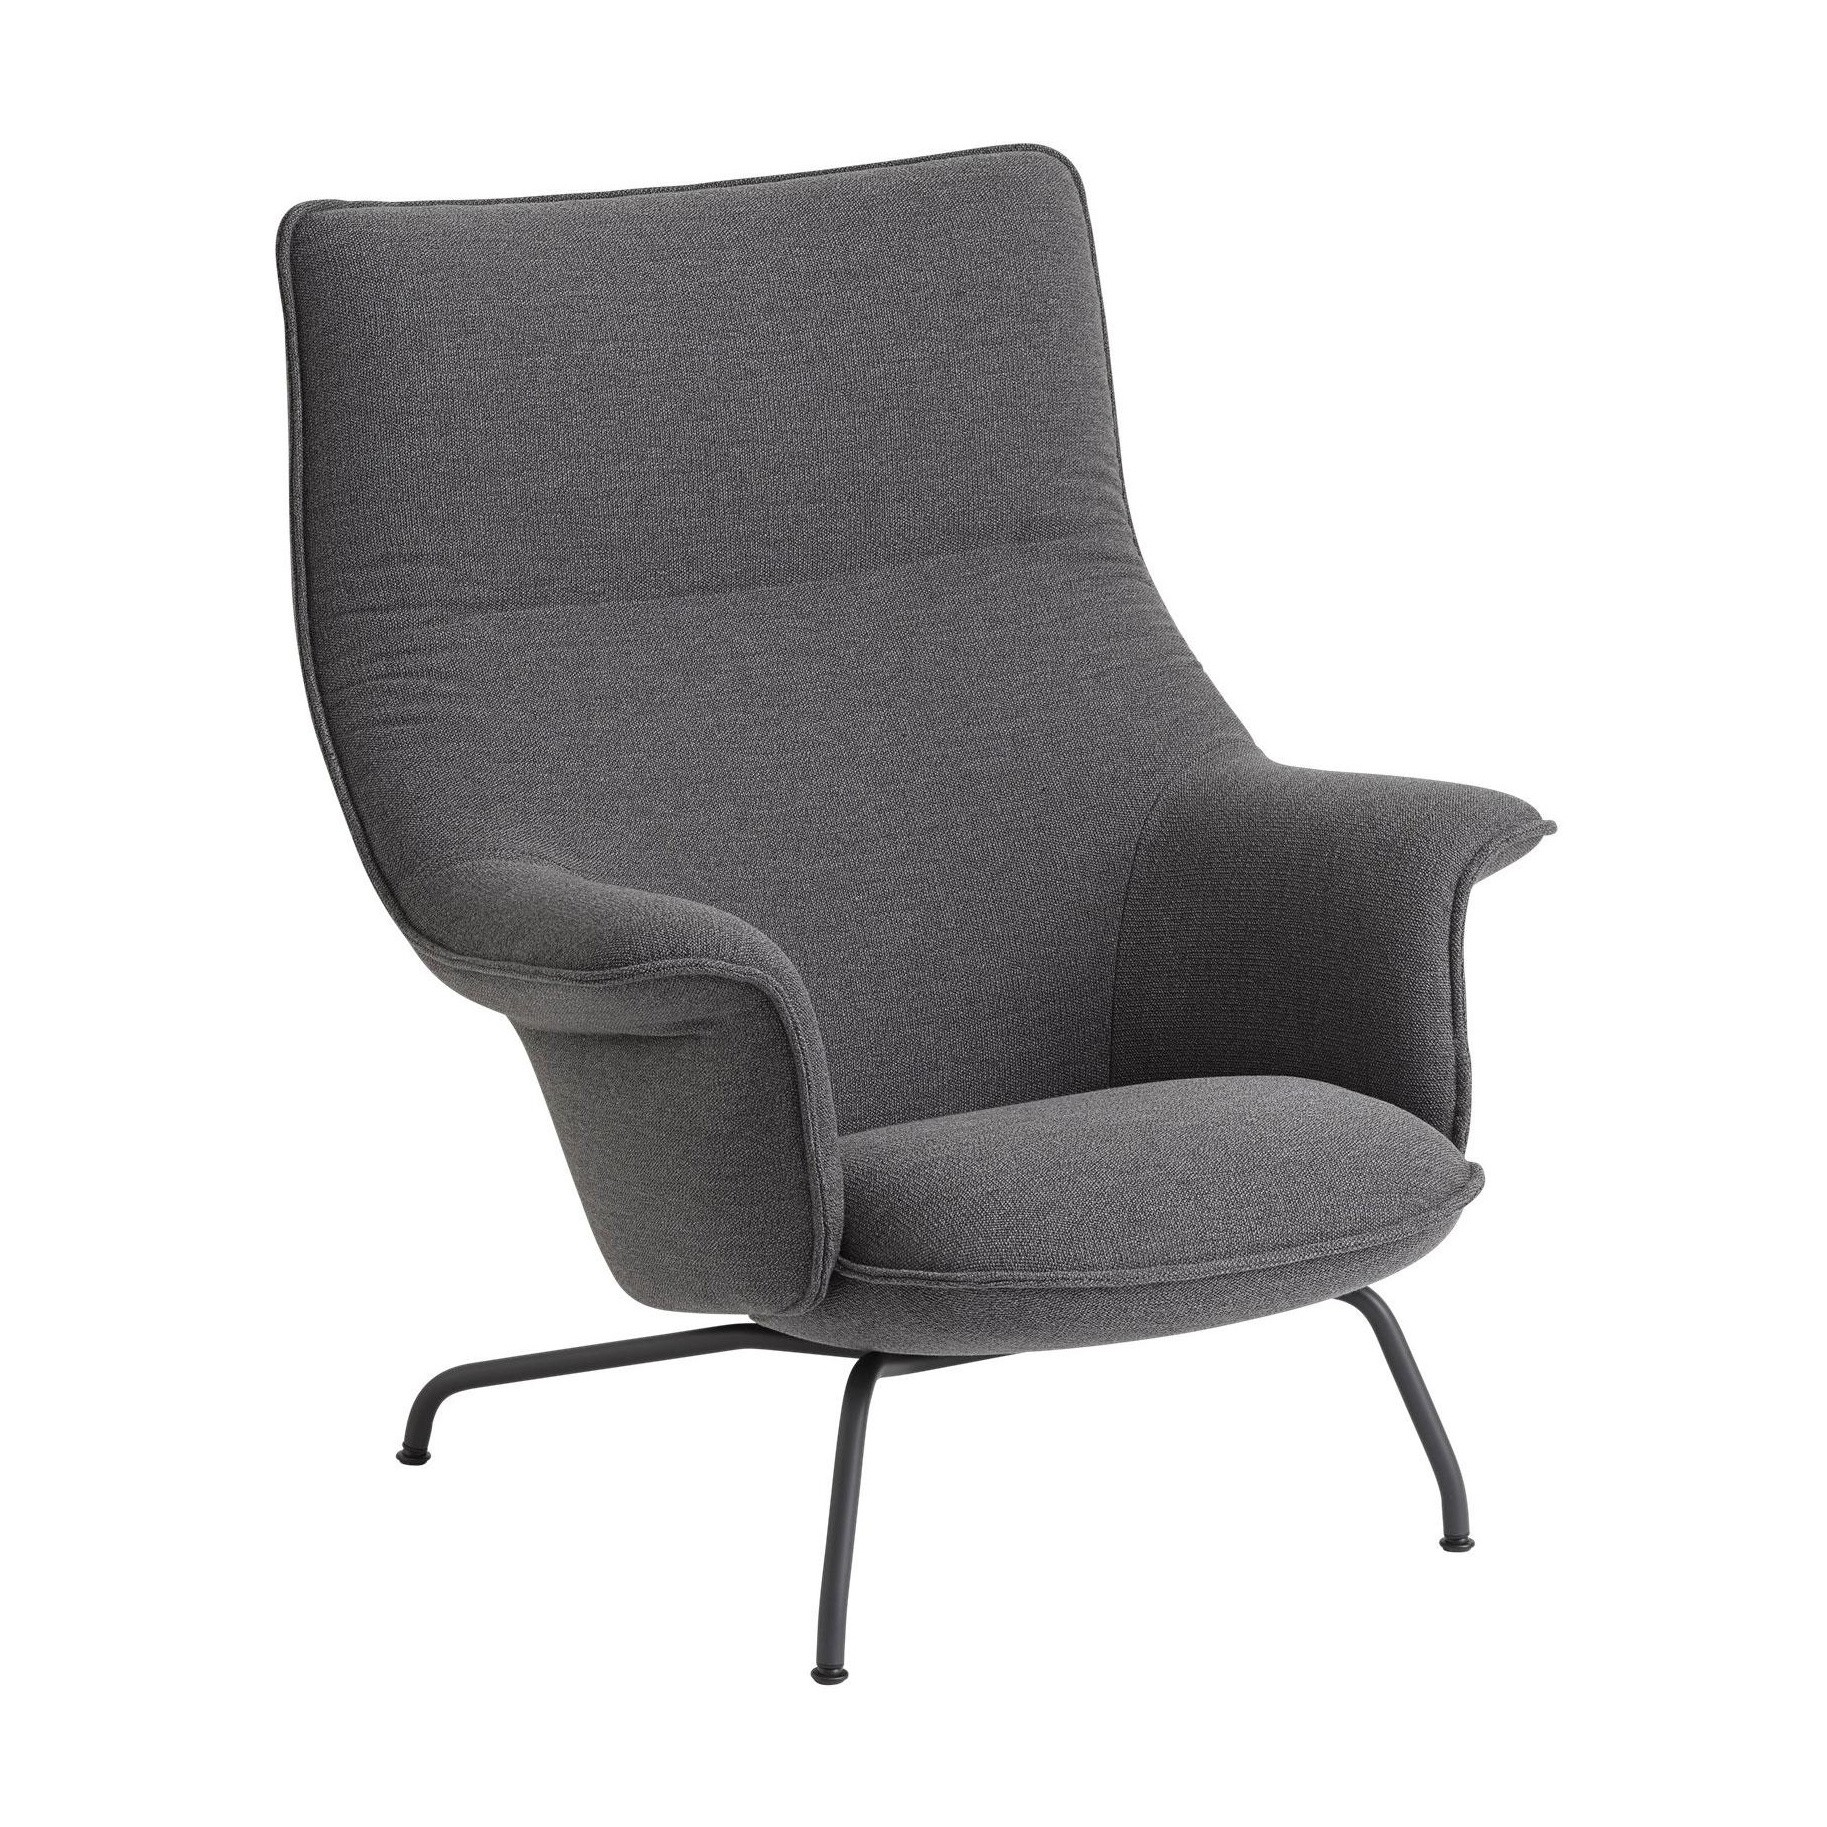 Ledersessel Lounge Muuto Doze Lounge Chair | Ambientedirect